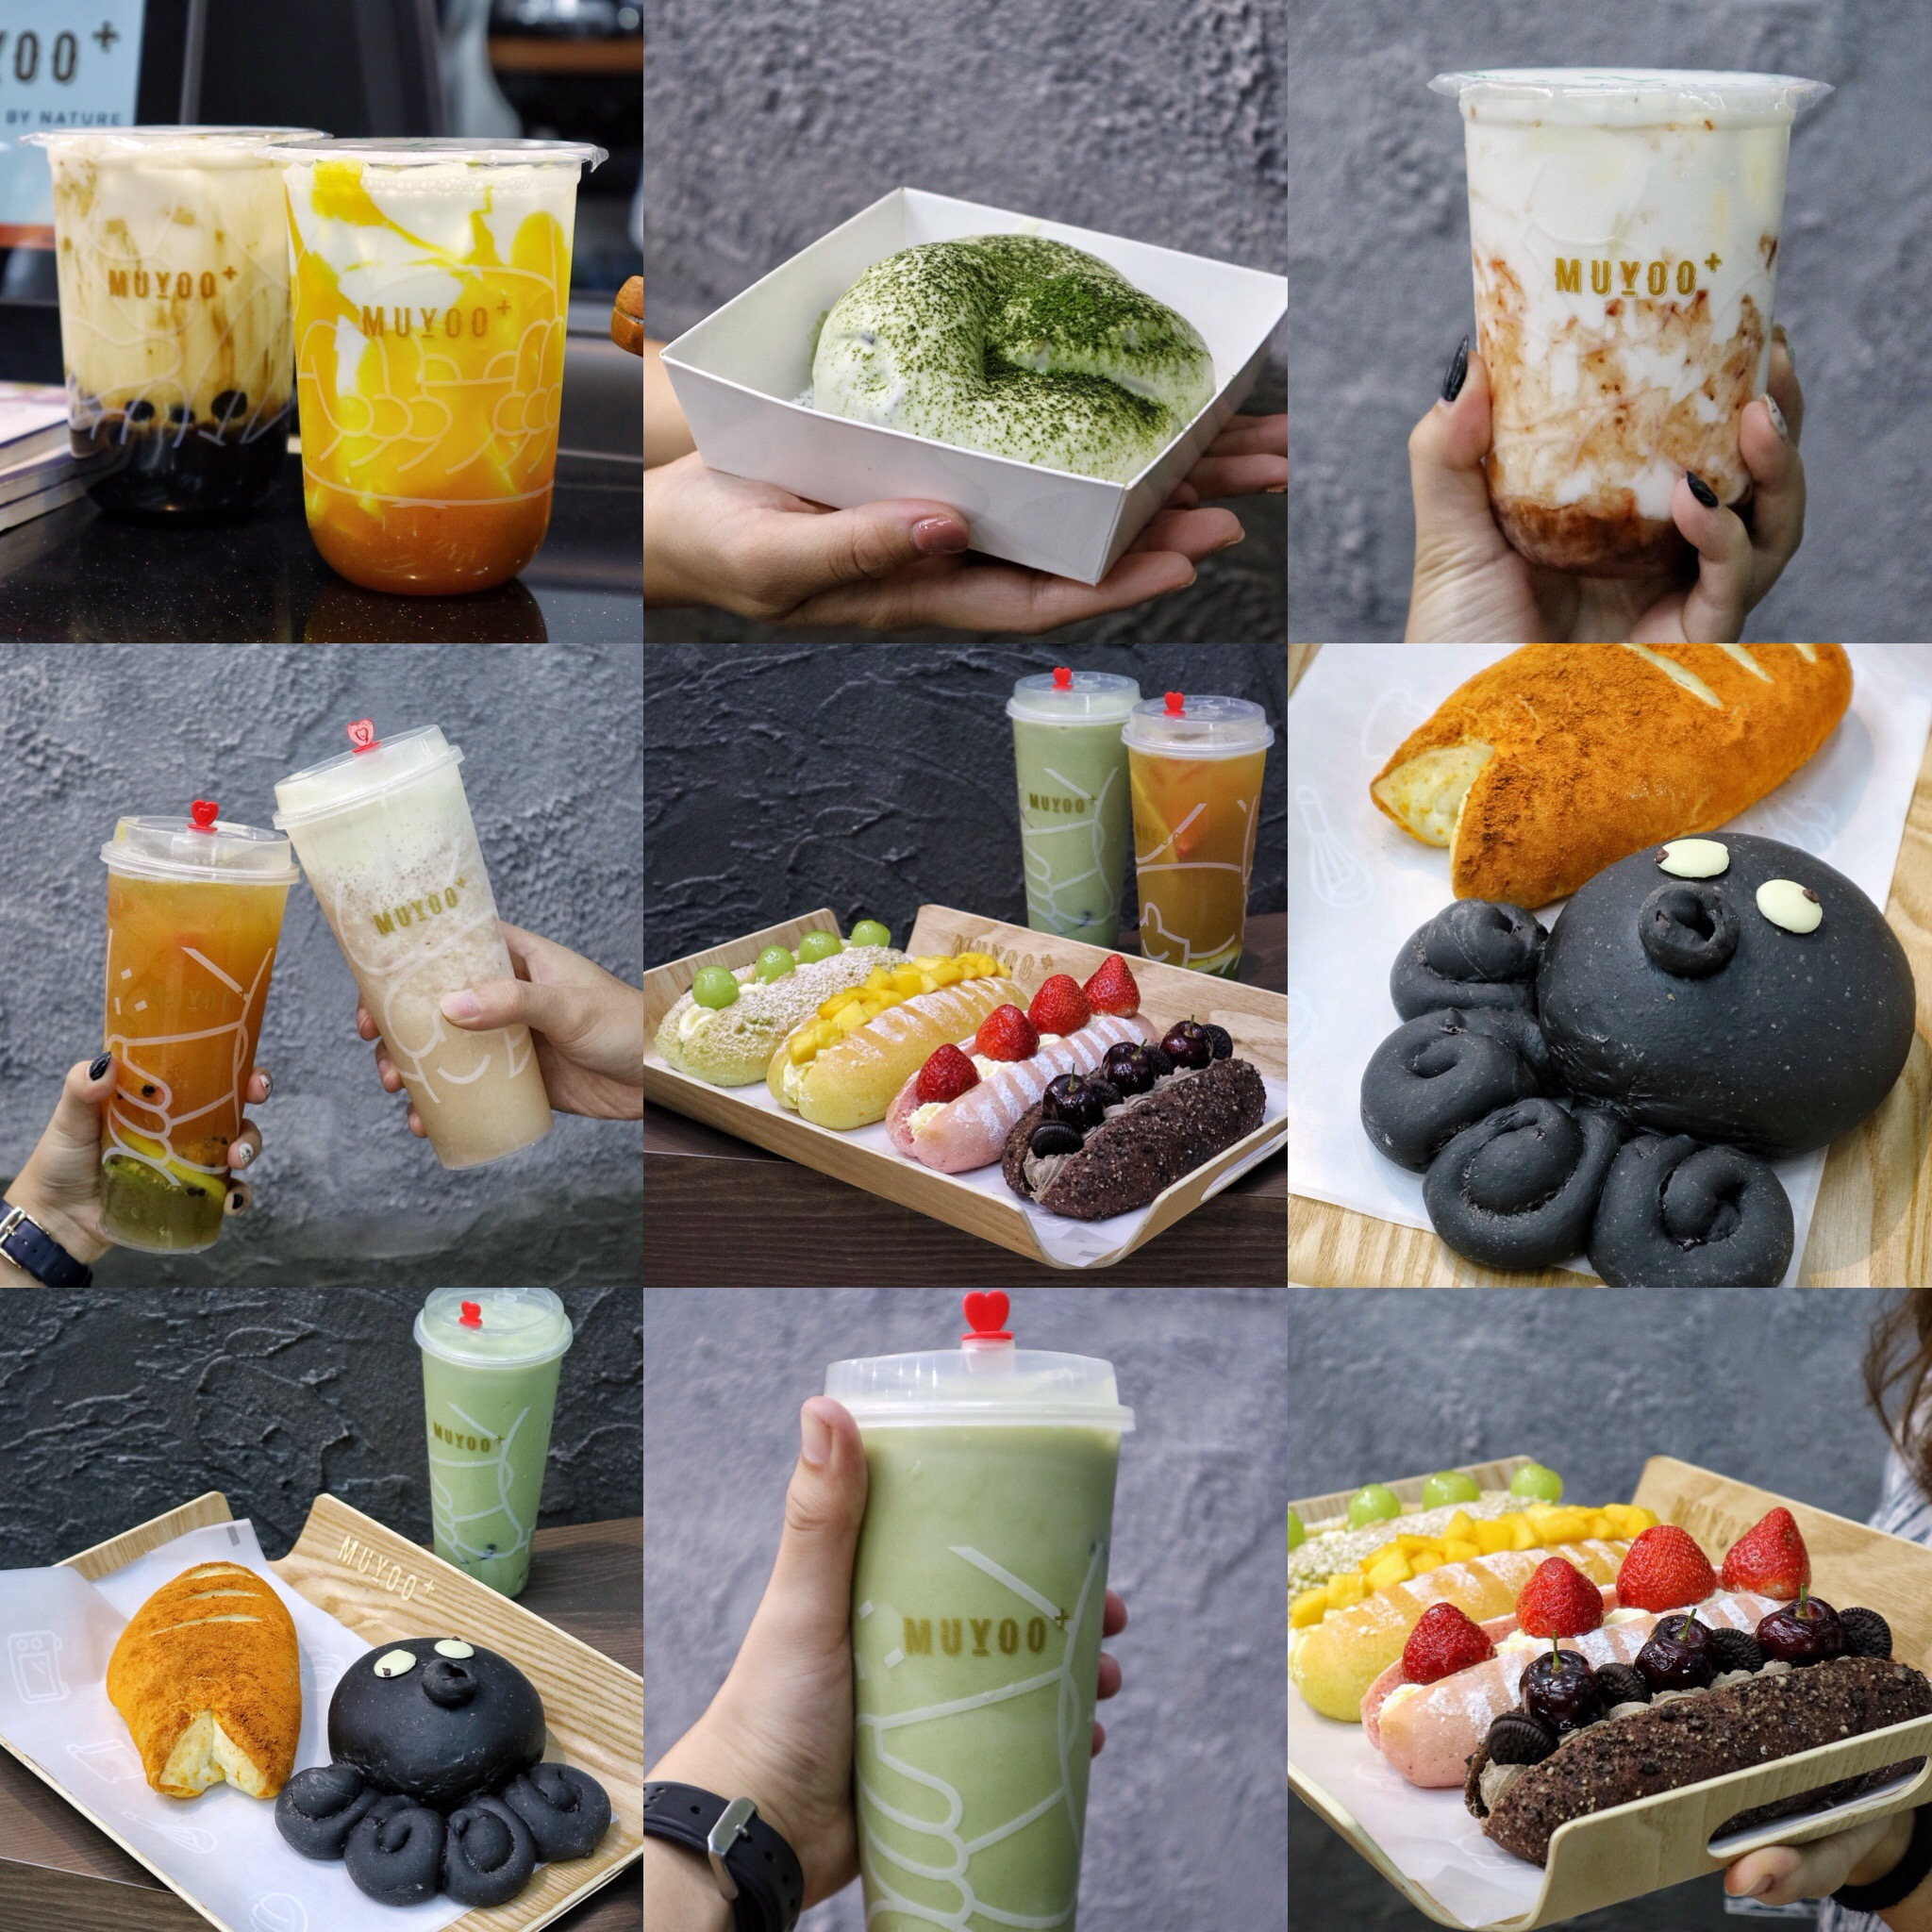 (NEW) MUYOO+: Singapore's First-Ever Fresh Bread & Fruit Tea Concept Opens New Outlet at Bedok Mall